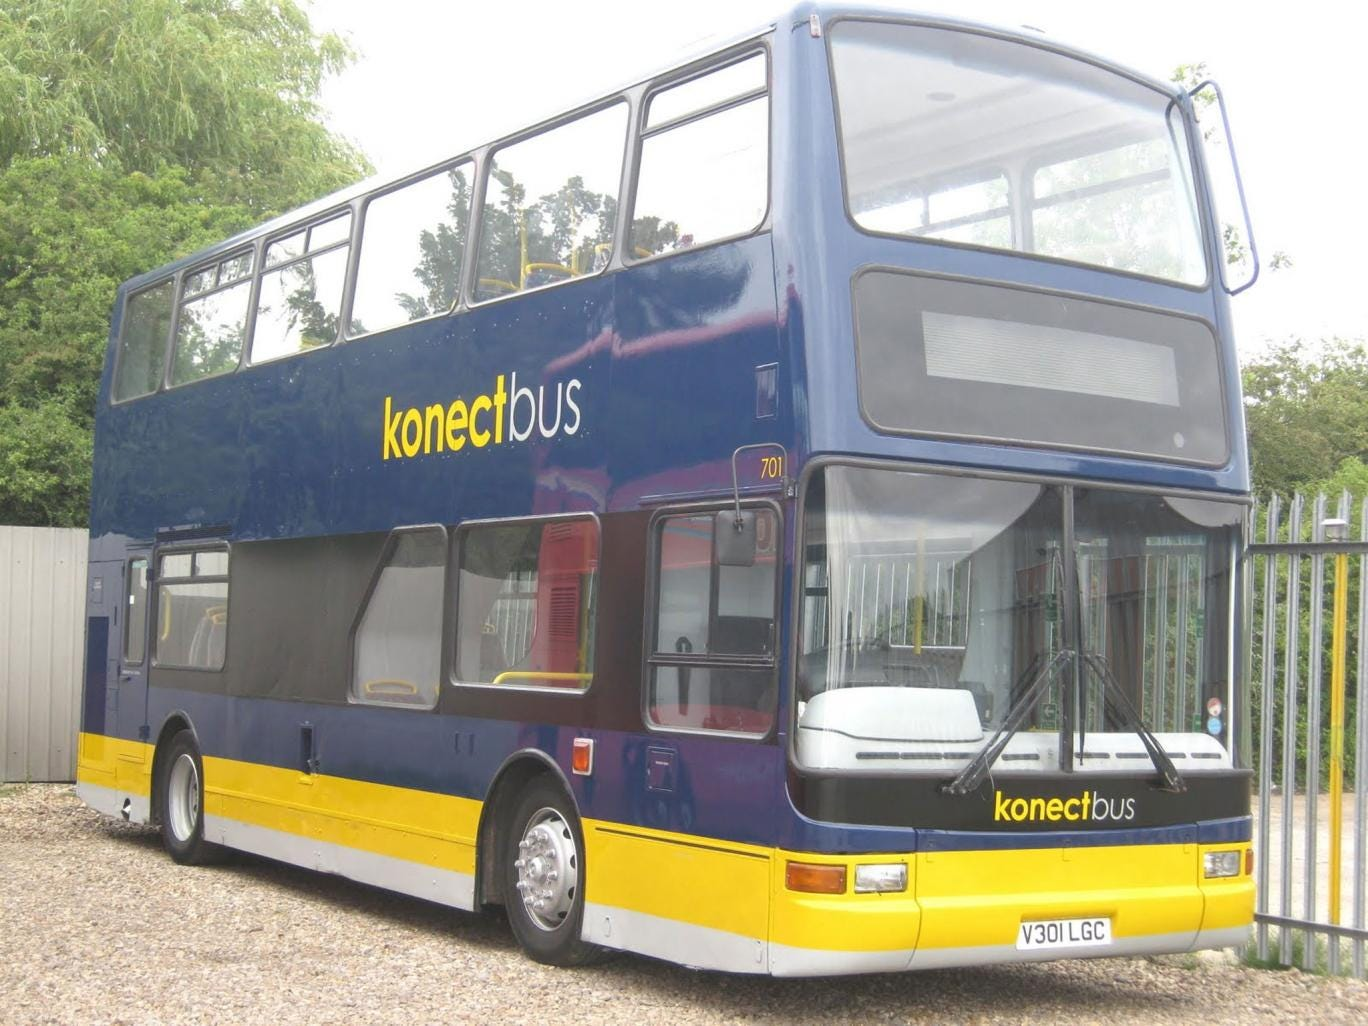 The attack took place on a Konectbus such as this